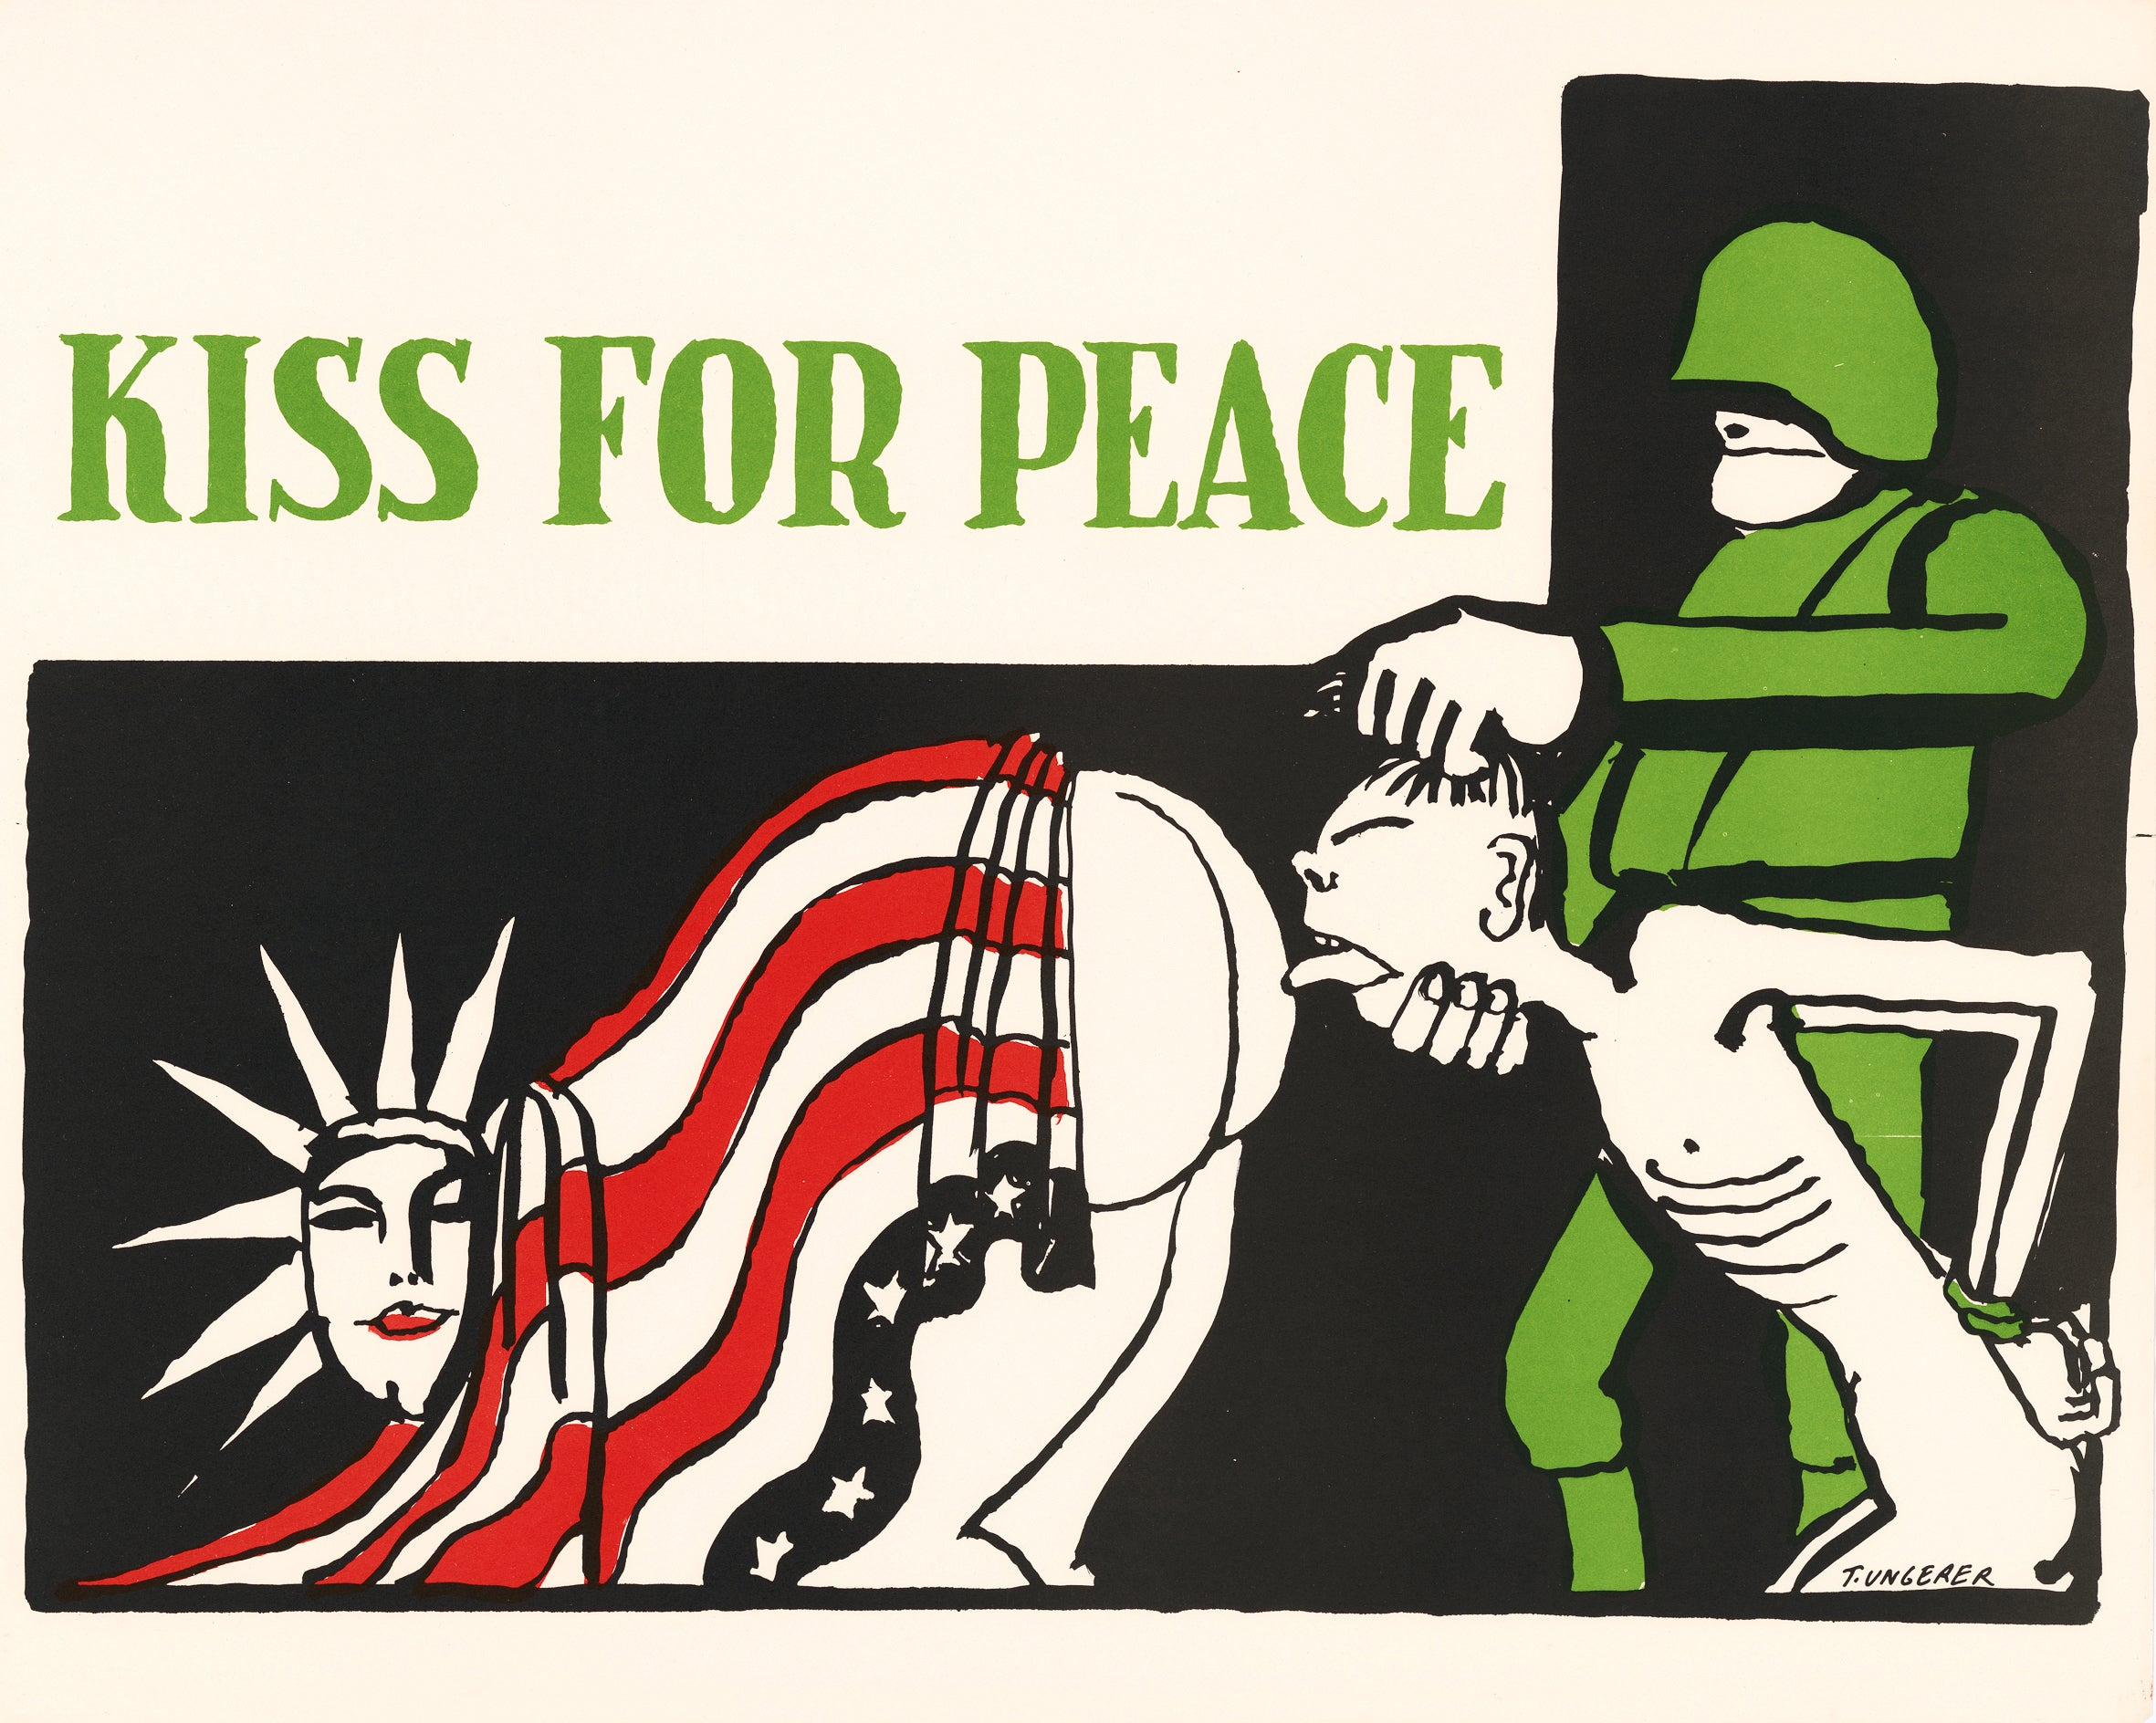 Meet the Illustrator Who Drew Kids' Books, Anti-War Posters, and Erotica